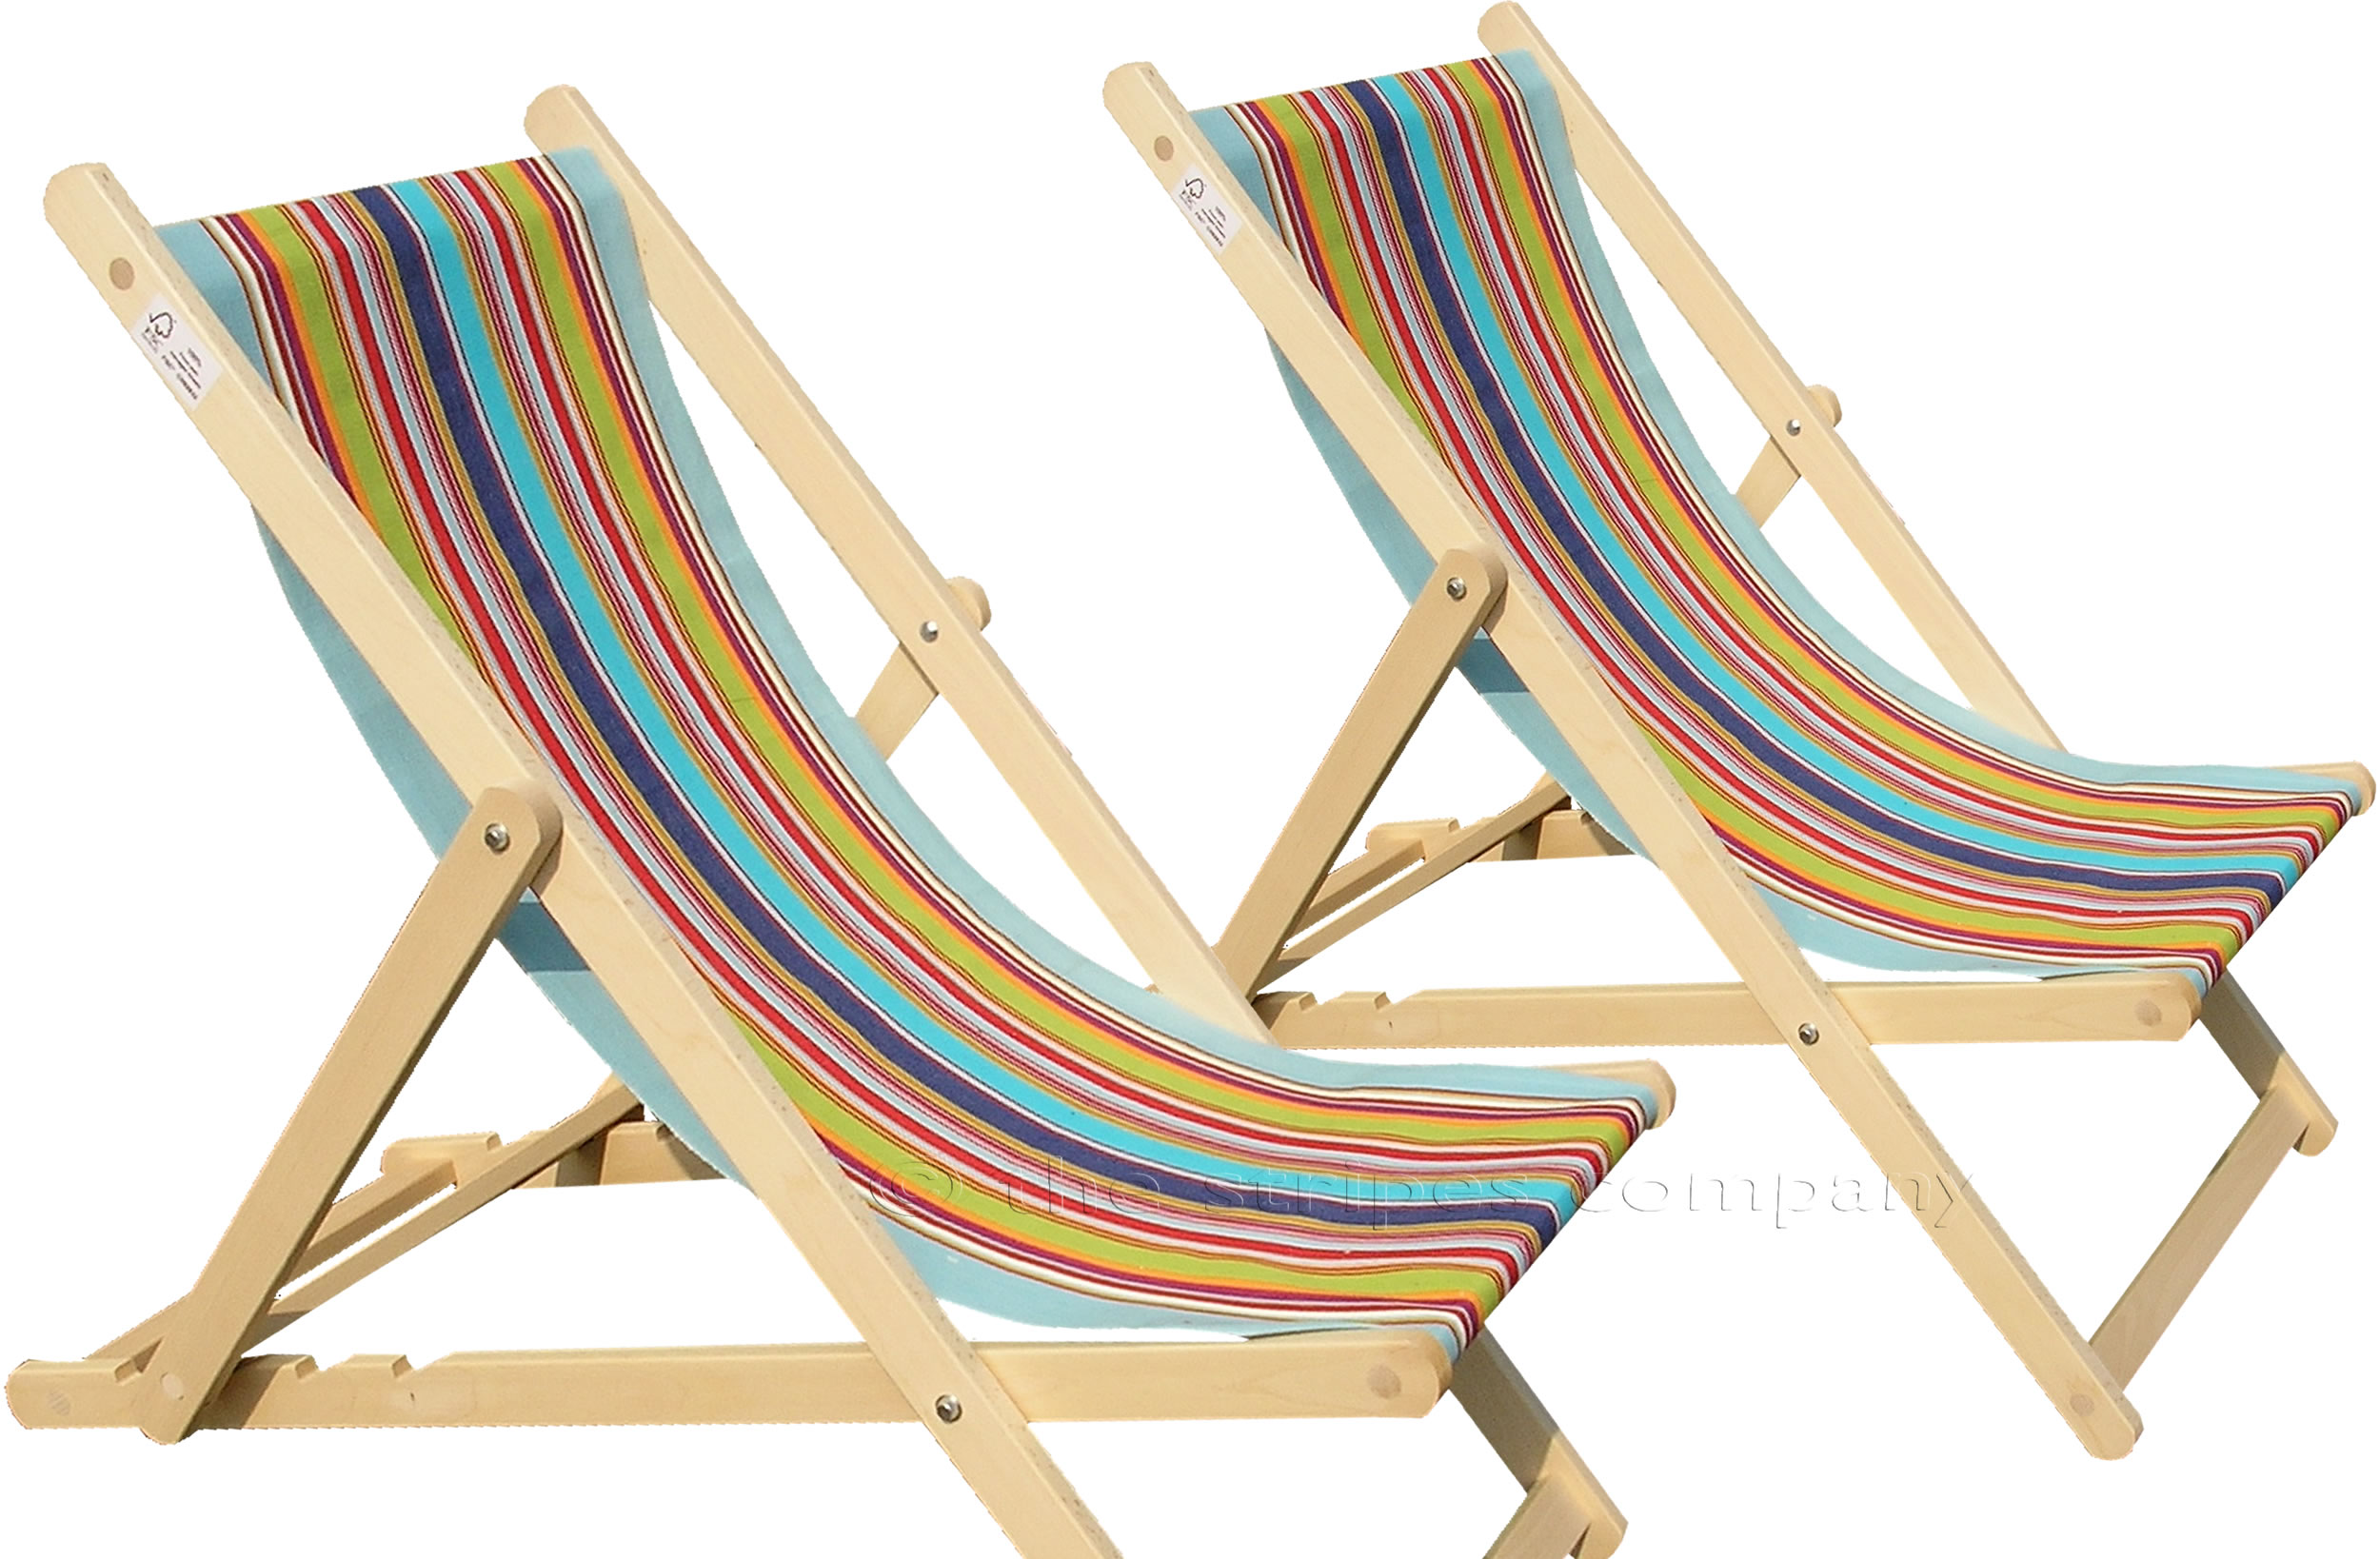 Pale Blue Deckchair Canvas Deckchair Fabrics Striped